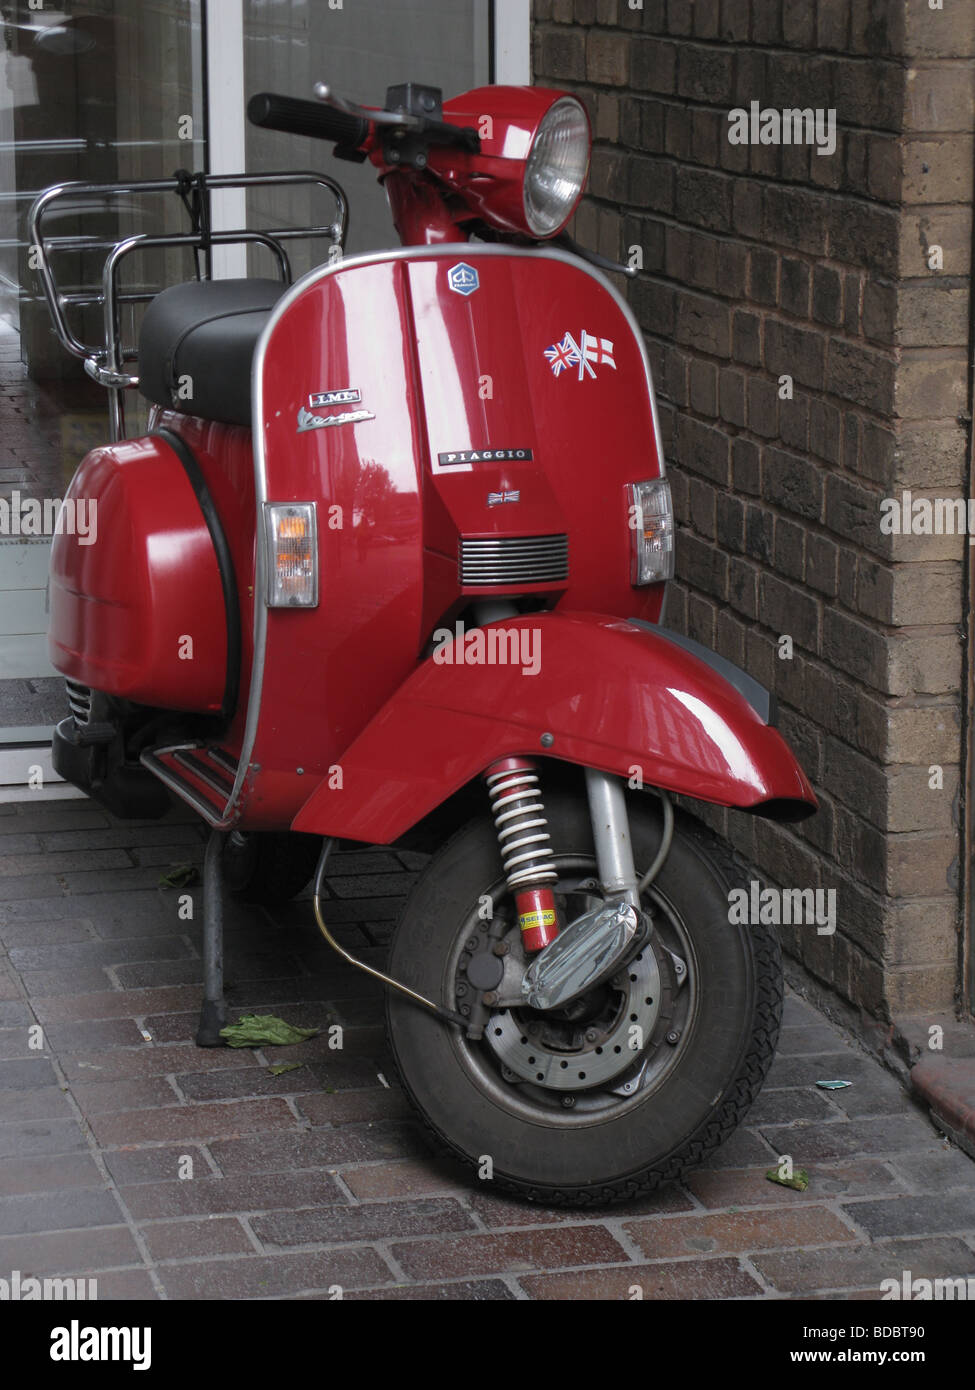 Red vespa px200 scooter by Piaggio parked in doorway in UK